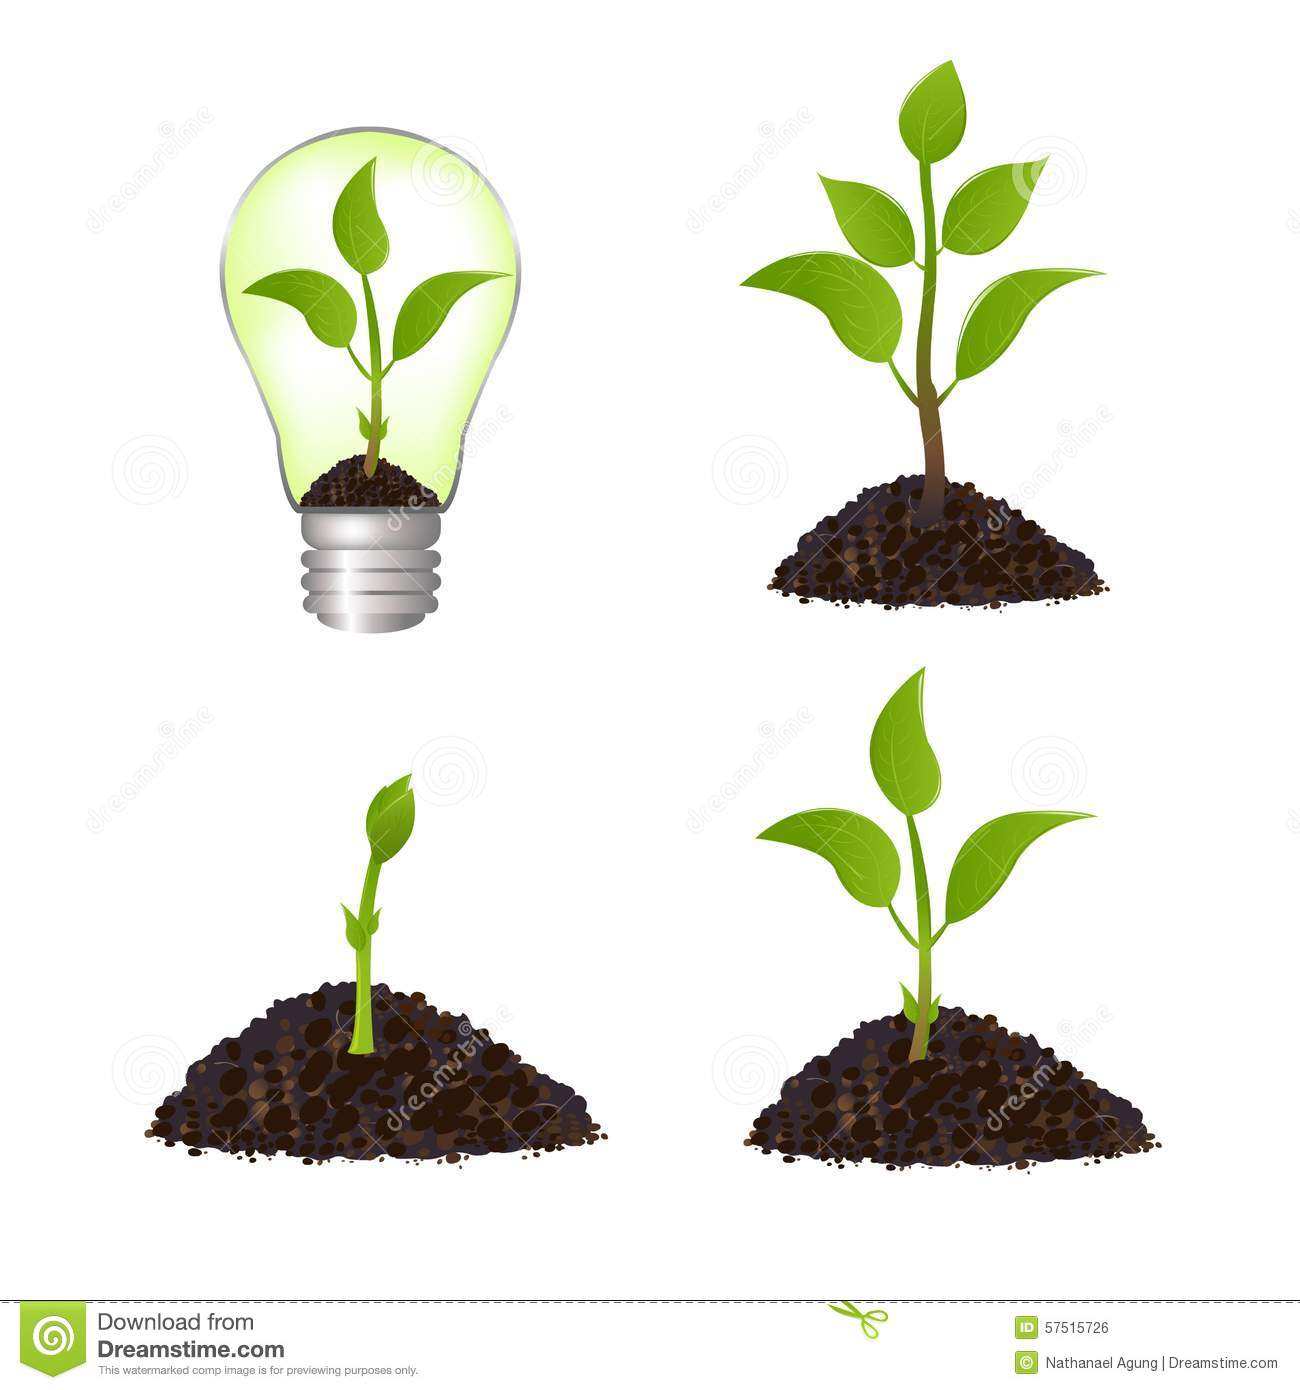 Electronic Circuit Project Designers Not Lossing Wiring Diagram Growing Plant Seed Illustration Stock Image Basic Electronics Diy Projects